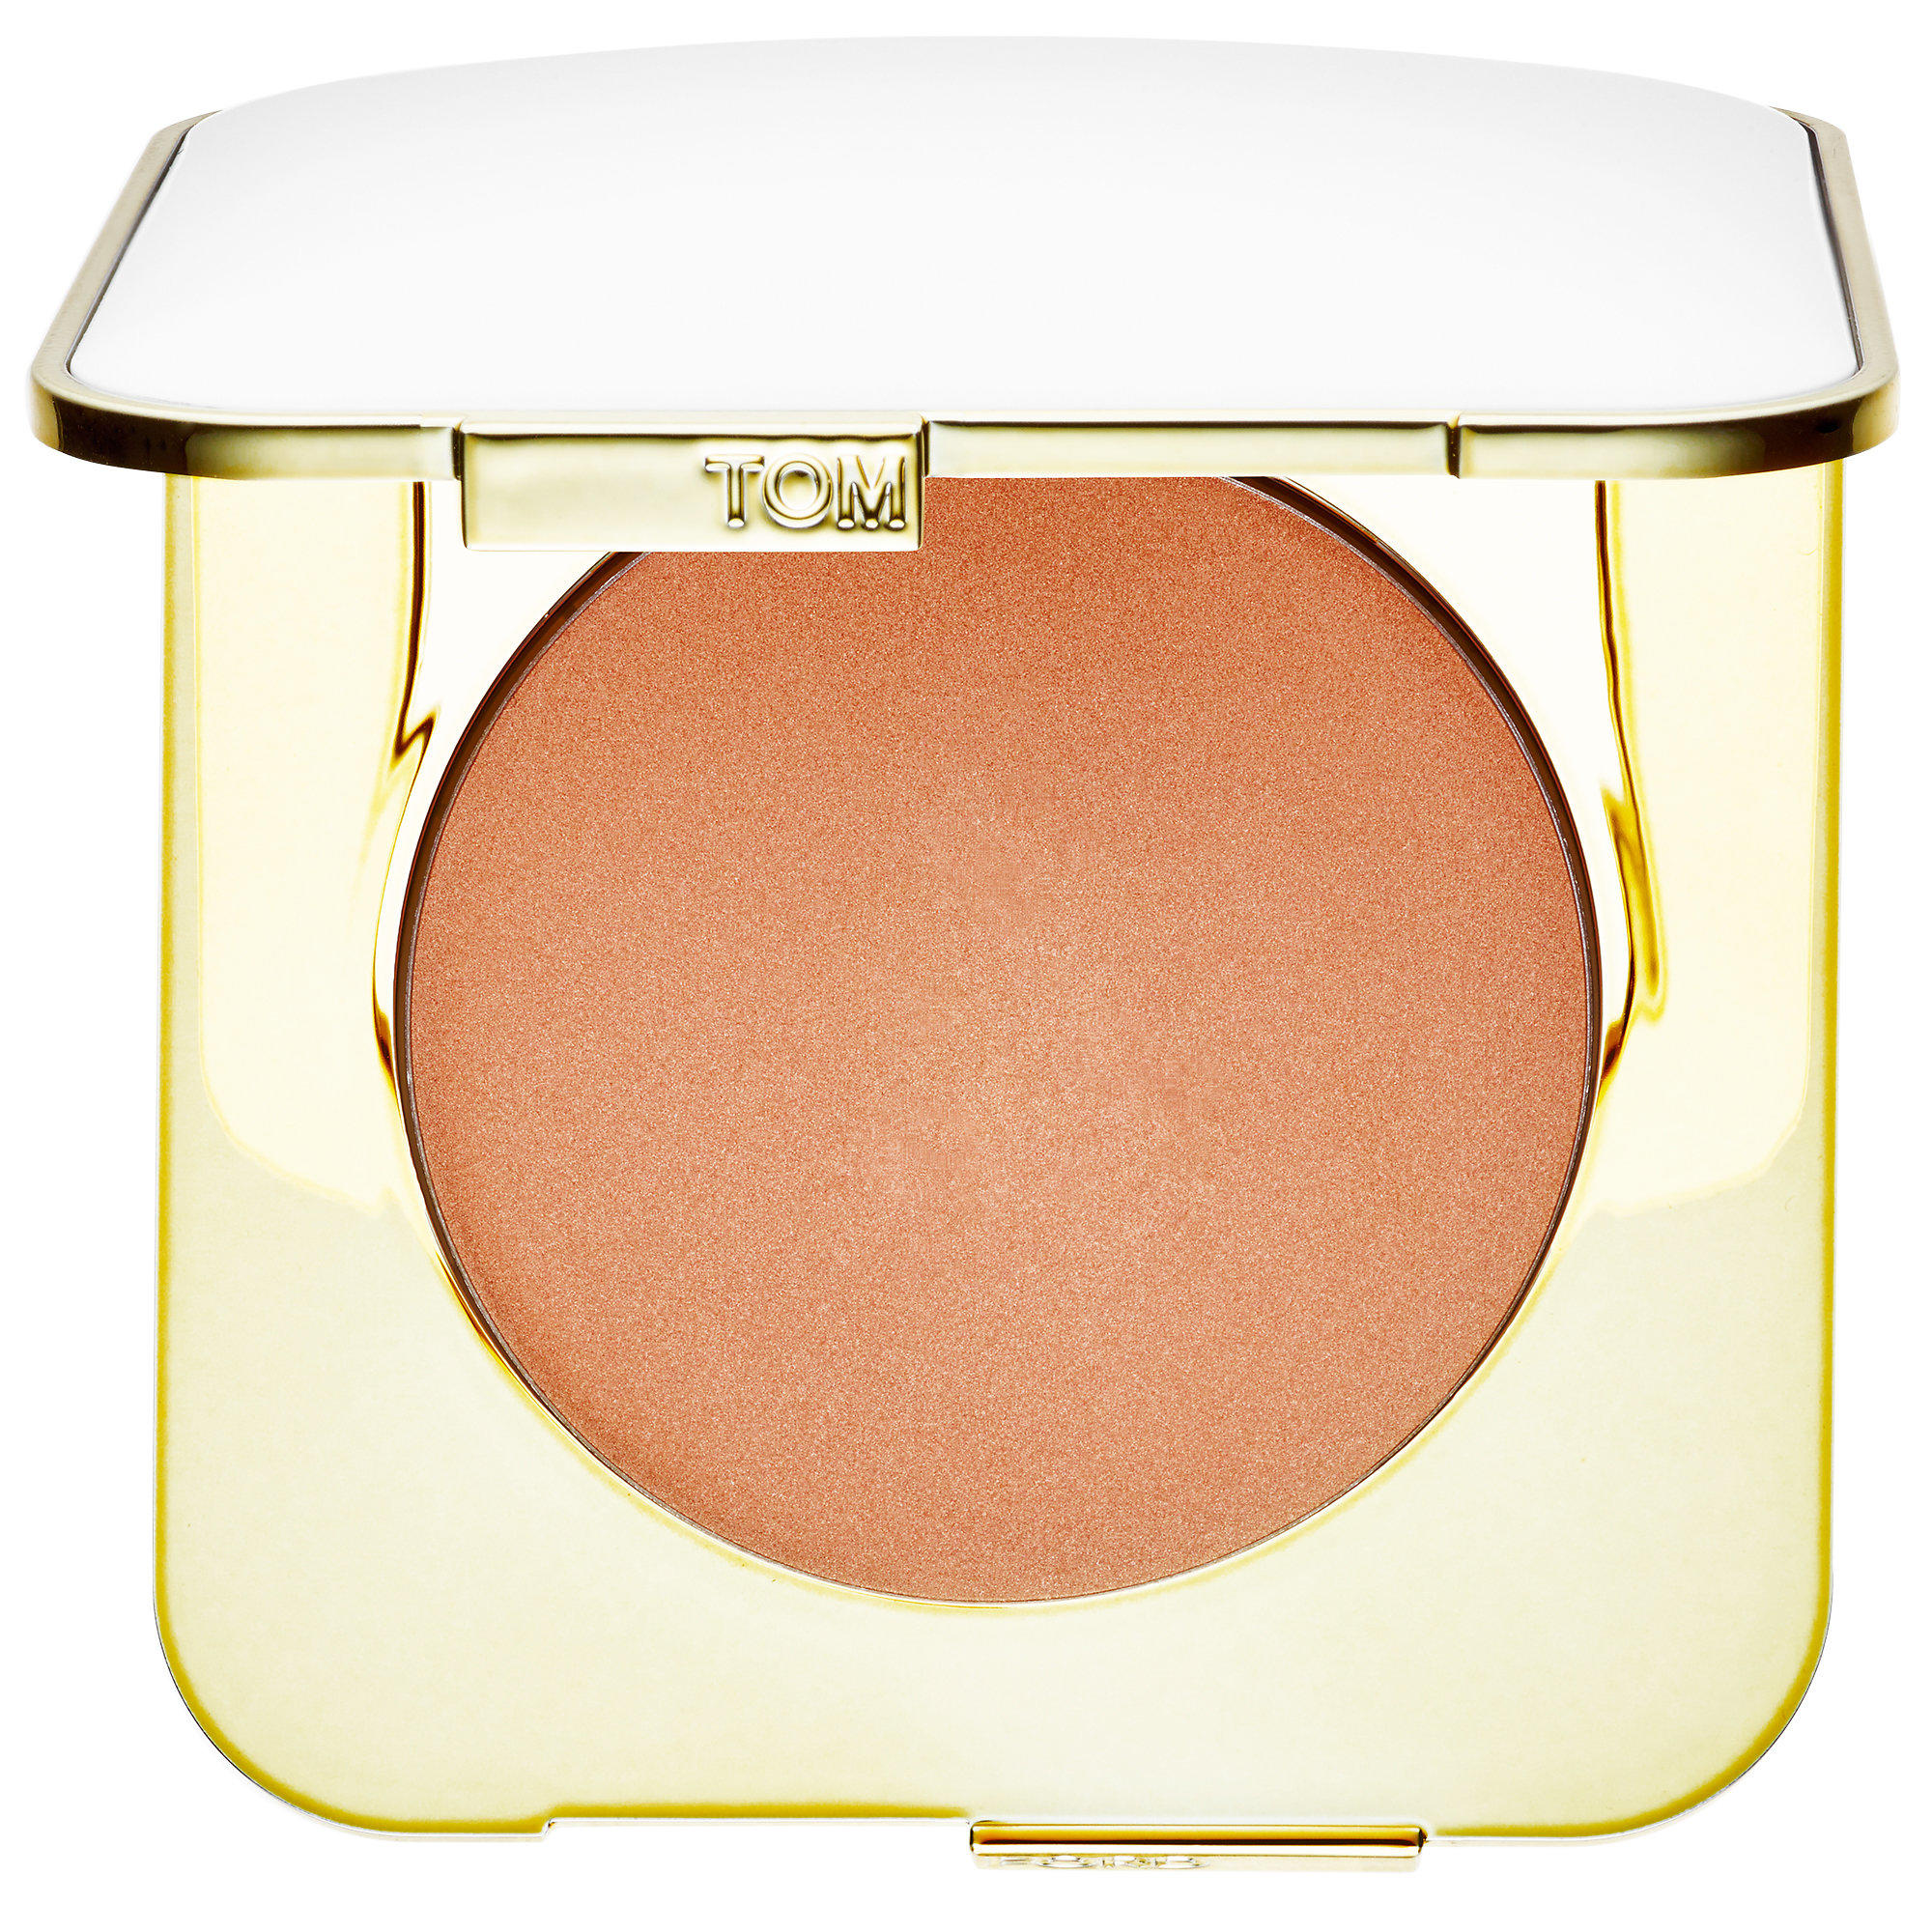 Tom Ford Cream Cheek Color Pieno Sole 02